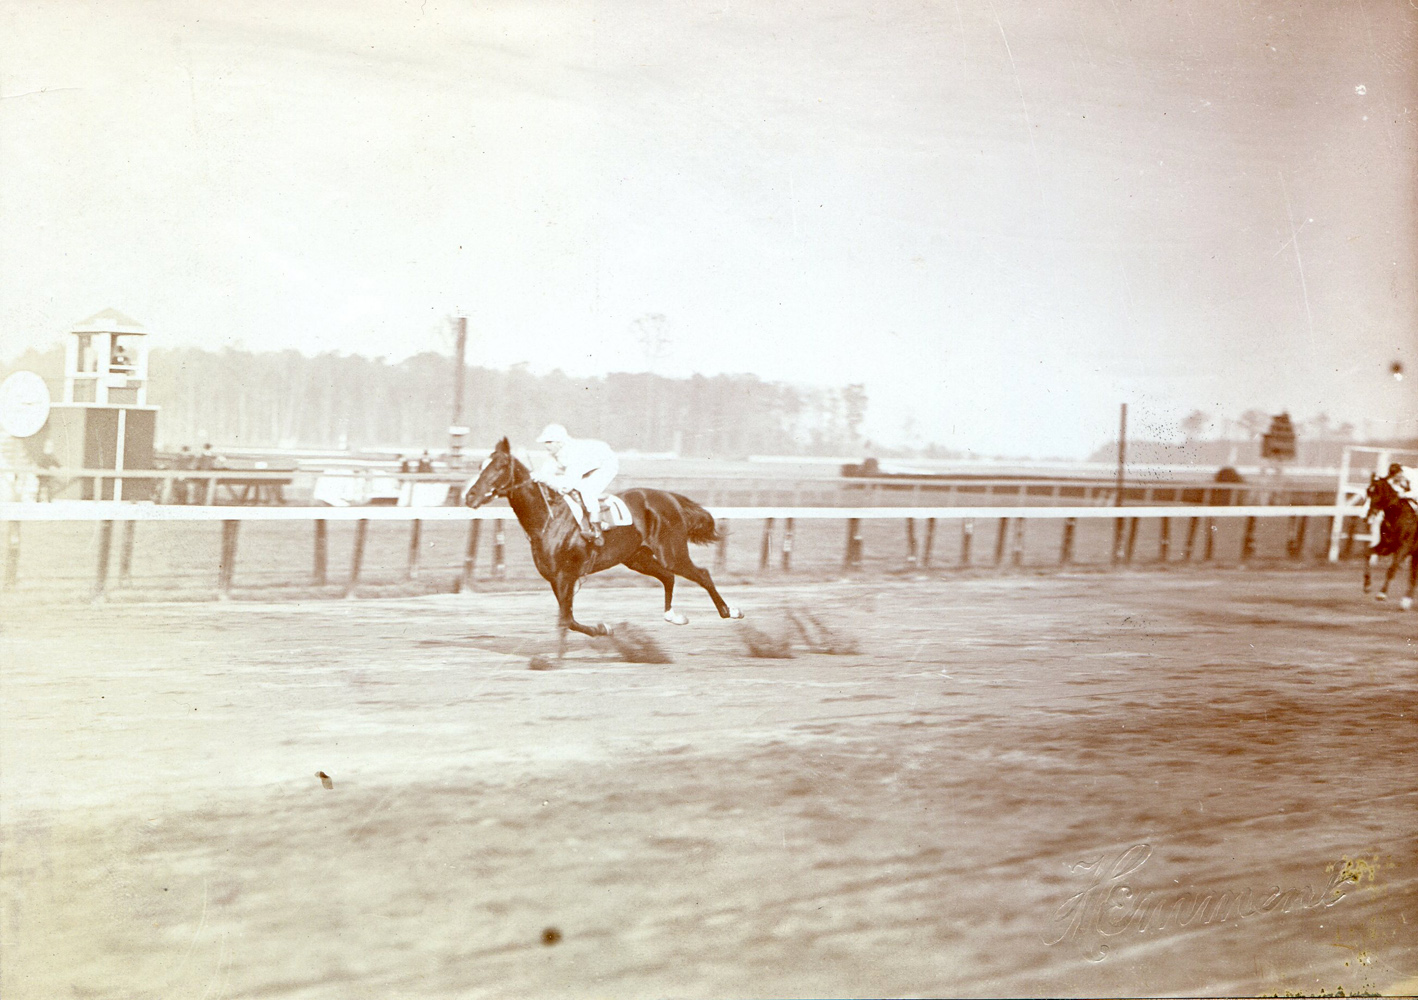 Colin (Walter Miller up) winning the 1907 National Stallion Stakes at Belmont Park (J. C. Hemment/Museum Collection)